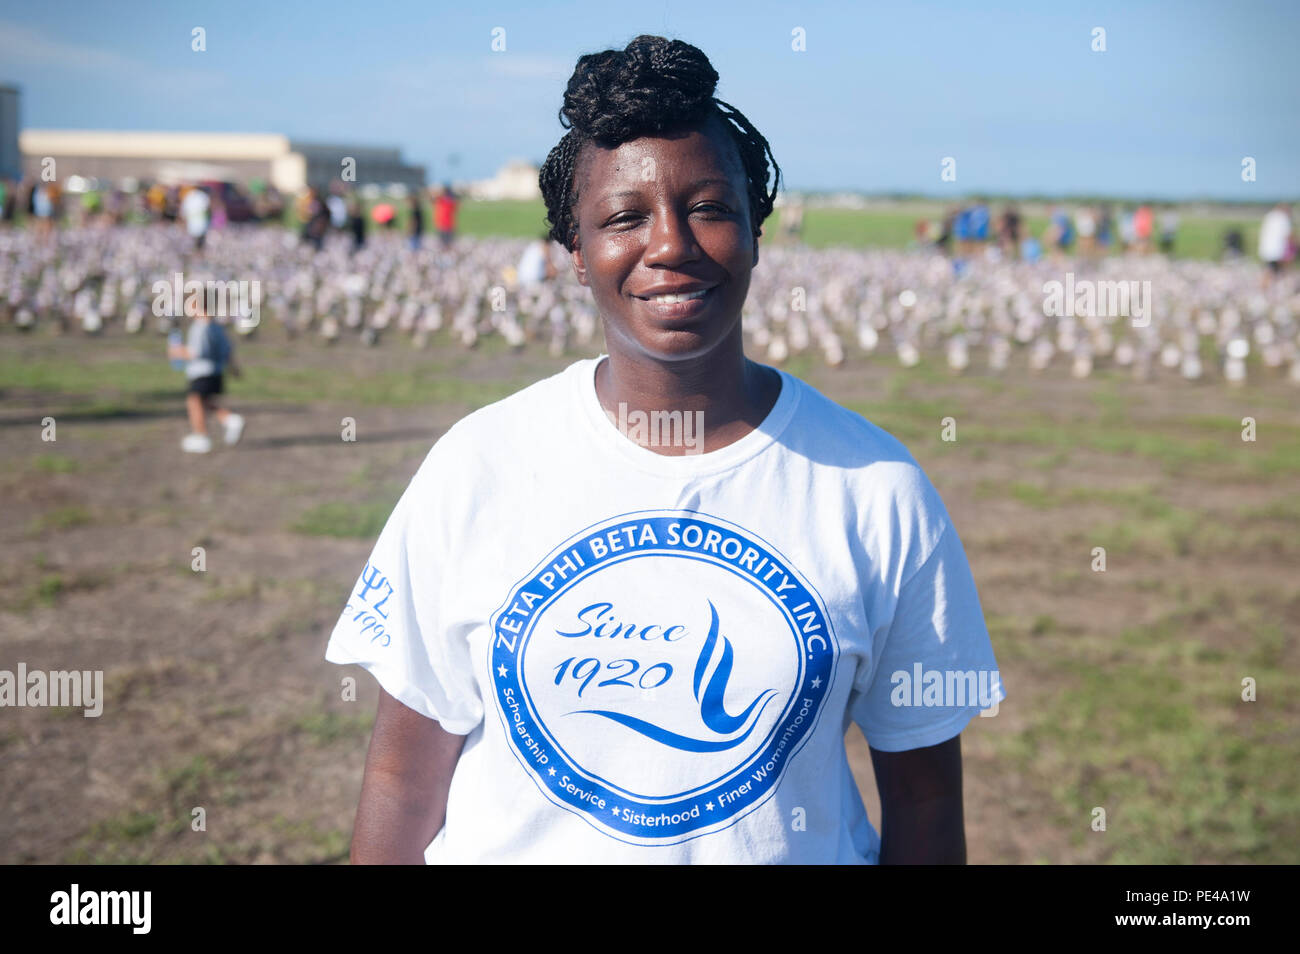 "U.S. Army Master Sgt. Celestine Jackson, Pacific Health Command senior career counselor, participates in the Fisher House Hero and Remembrance Run, Walk or Roll event held at Ford Island to honor fallen service members Sept. 5, 2015, at Joint Base Pearl Harbor-Hickam, Hawaii. ""My first year coming here it was an opportunity for me to pay homage to those soldiers who paved the way for us and who paid the ultimate sacrifice,' Jackson said. 'The first year when we were putting the pictures on the boots, at about the 30th boot in, I got to a personal friend's boot and it was just so overwhelmingly - Stock Image"